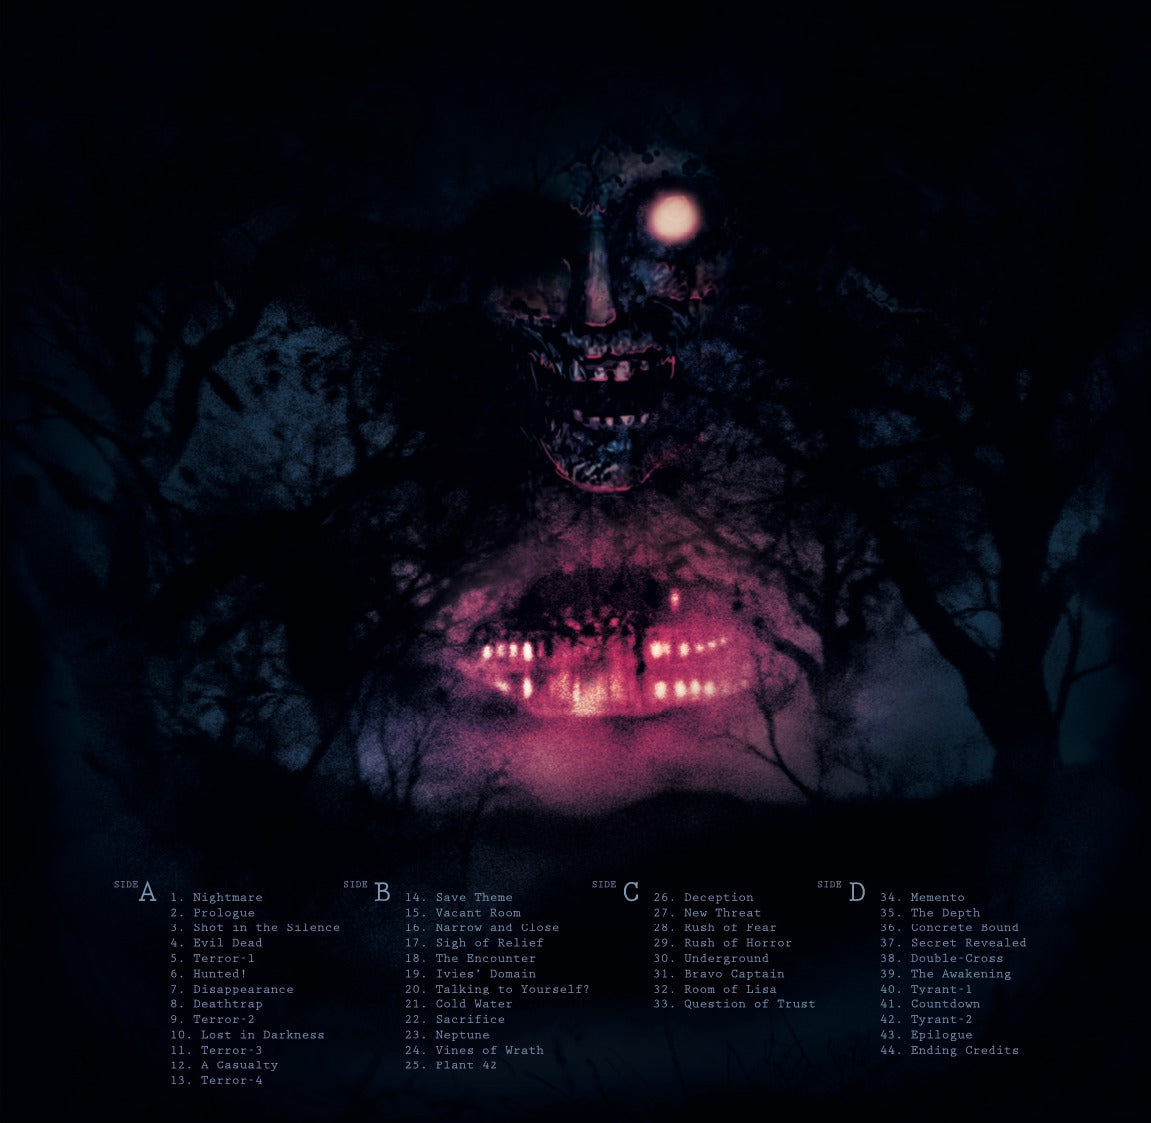 The back cover of the Resident Evil vinyl.